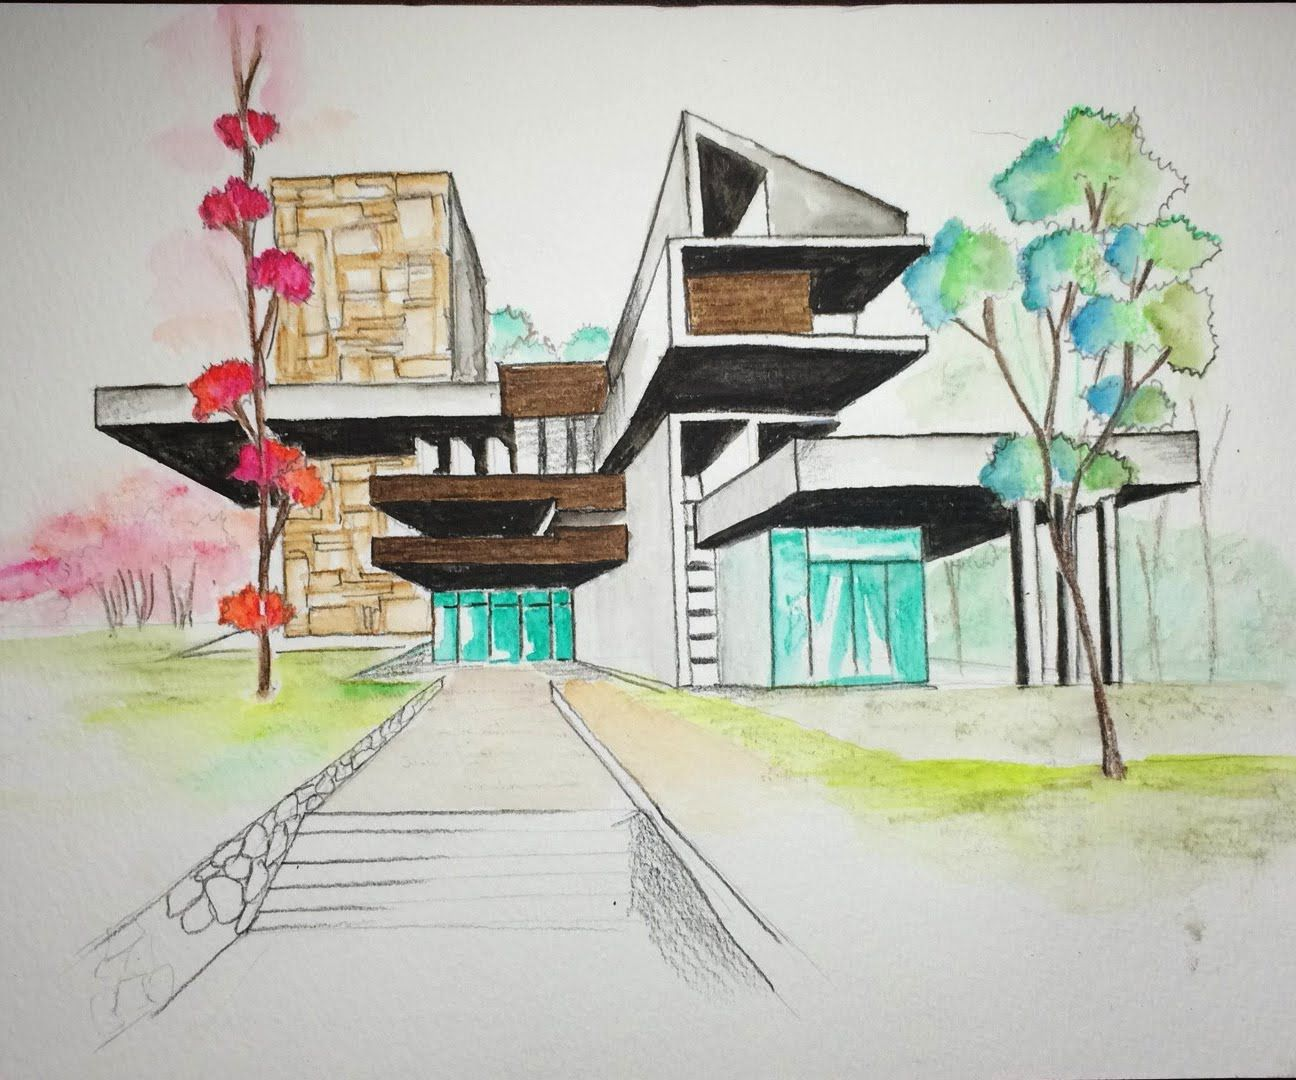 Watercolor Pencil Art 2 Architectural Freehand One Point